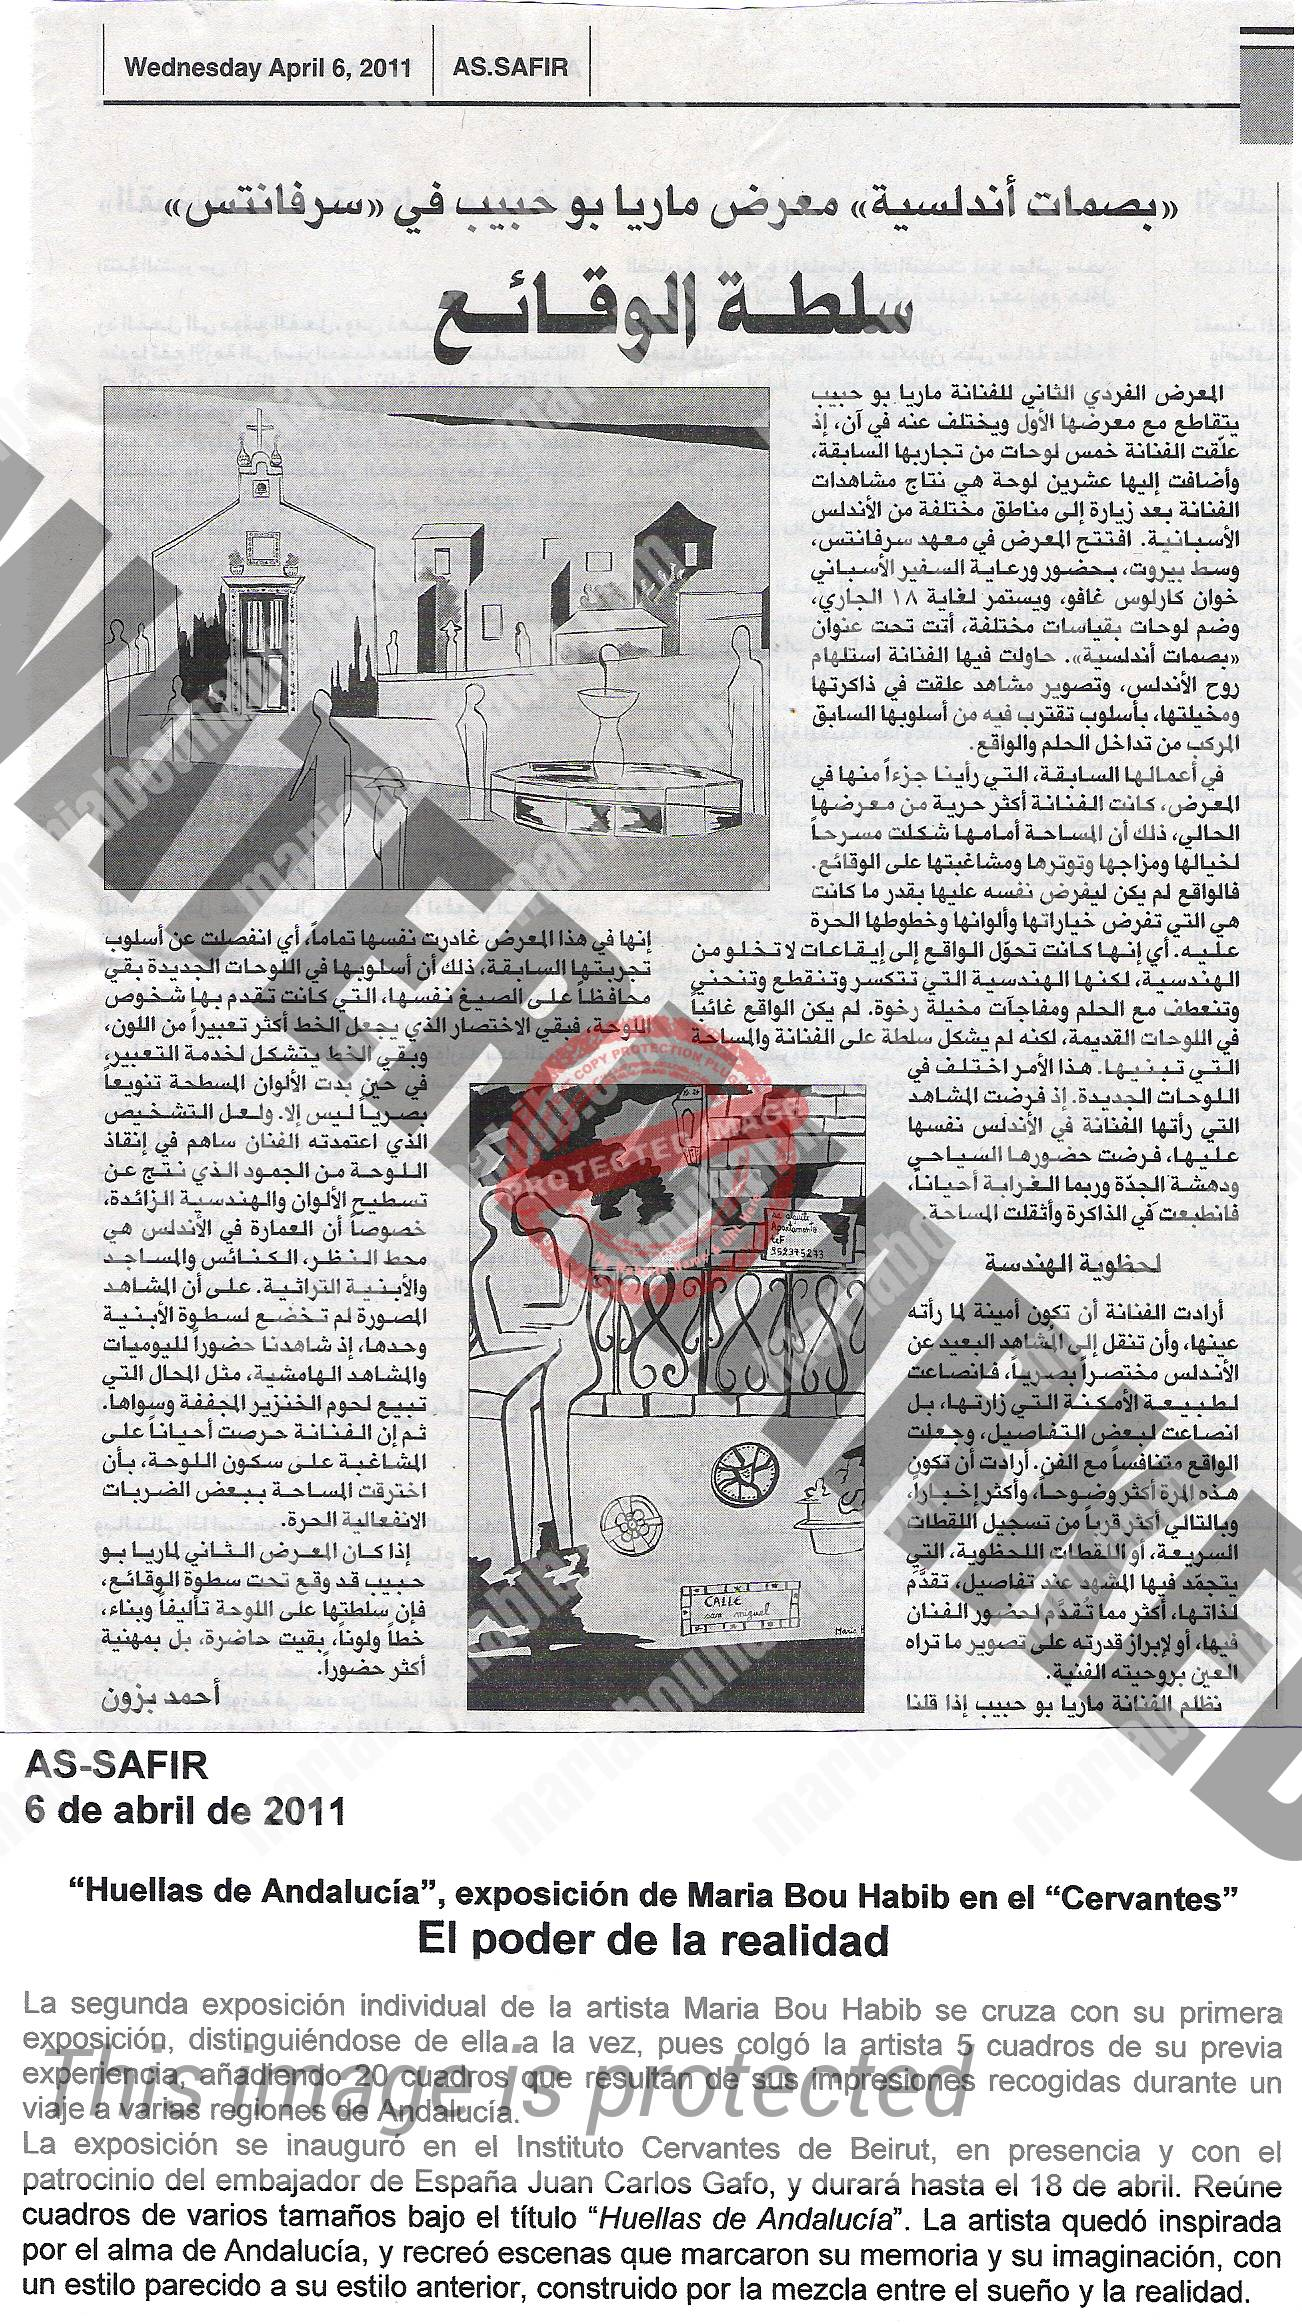 Al Safir – an article by the Art critic Ahmad Bazzoun